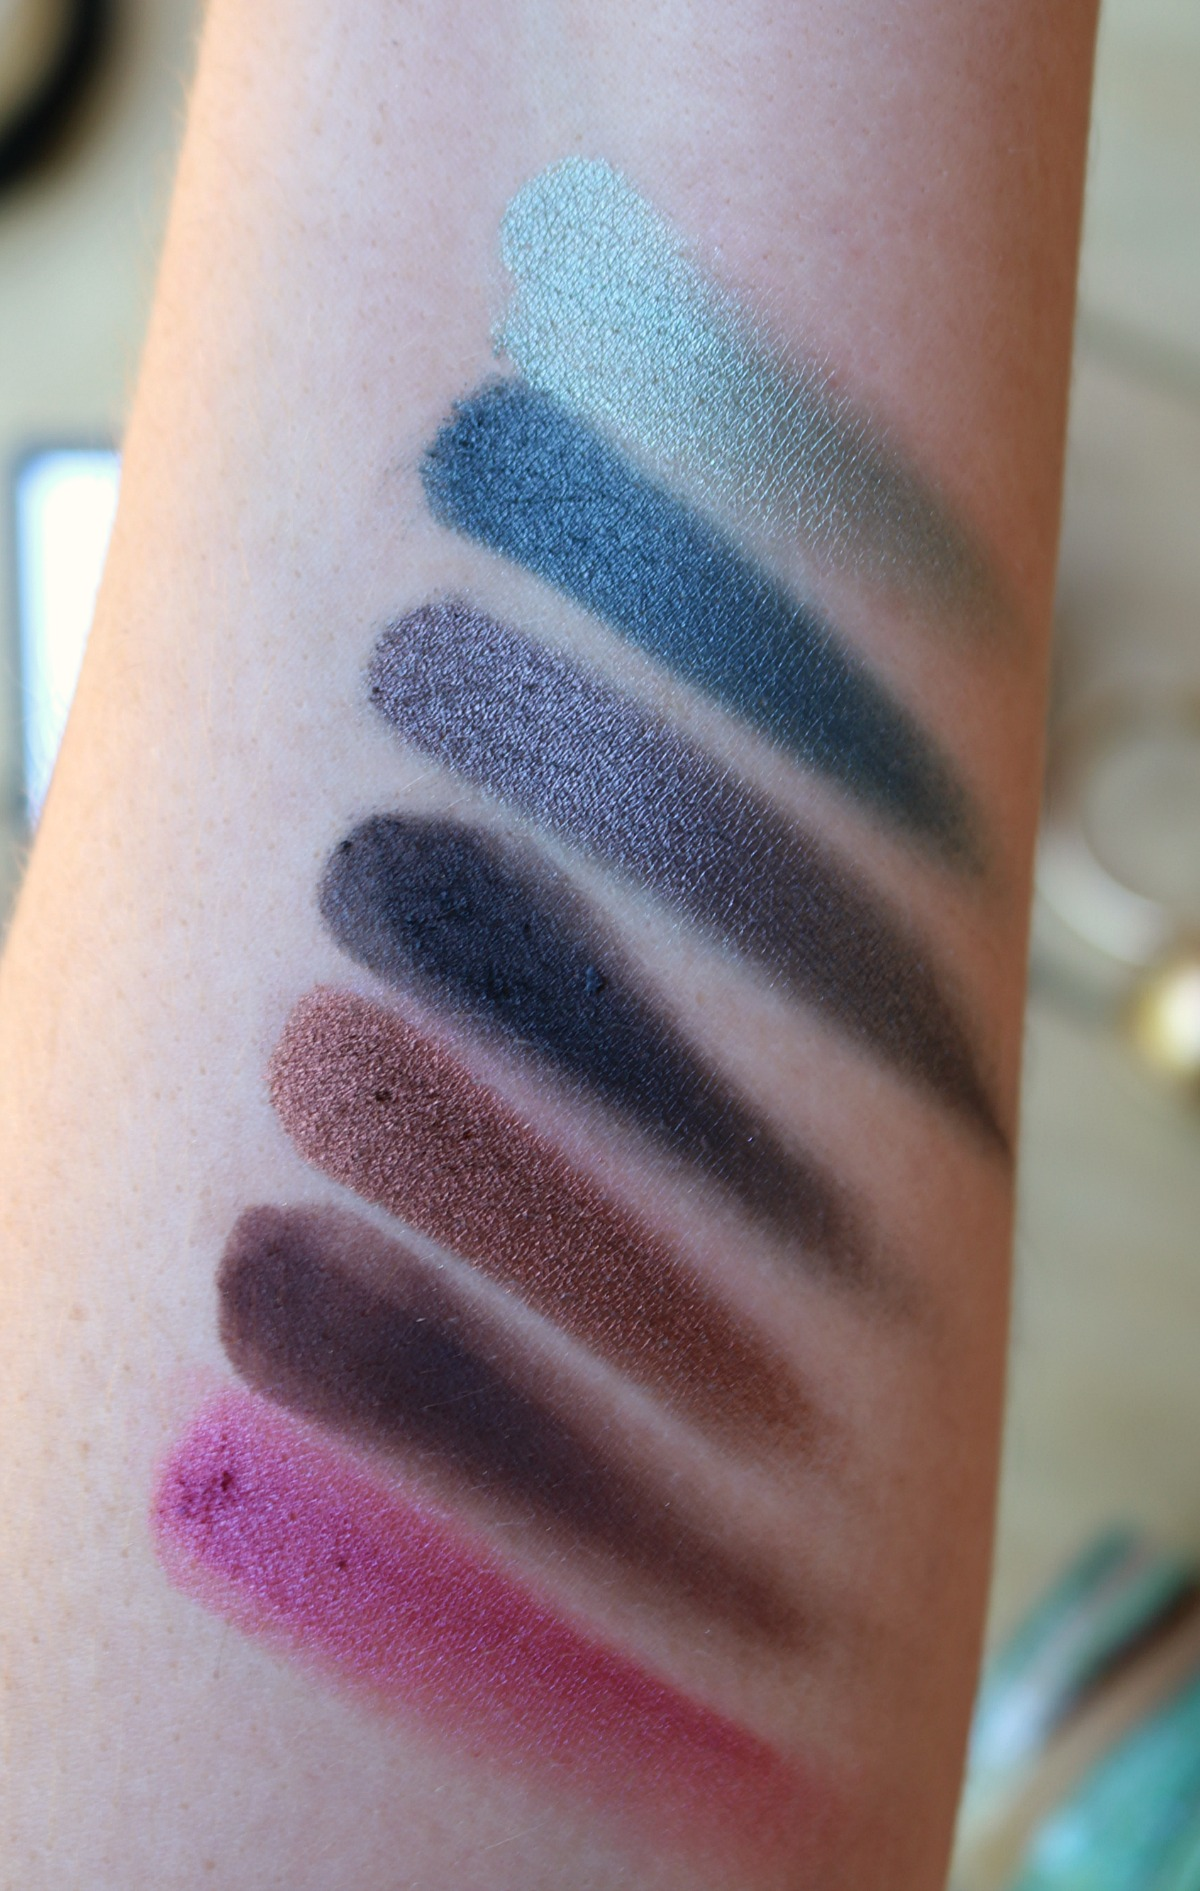 Urban Decay Born to Run Eyeshadow Palette Review and Swatches I DreaminLace.com #UrbanDecay #SummerMakeup #CrueltyFree #Makeup